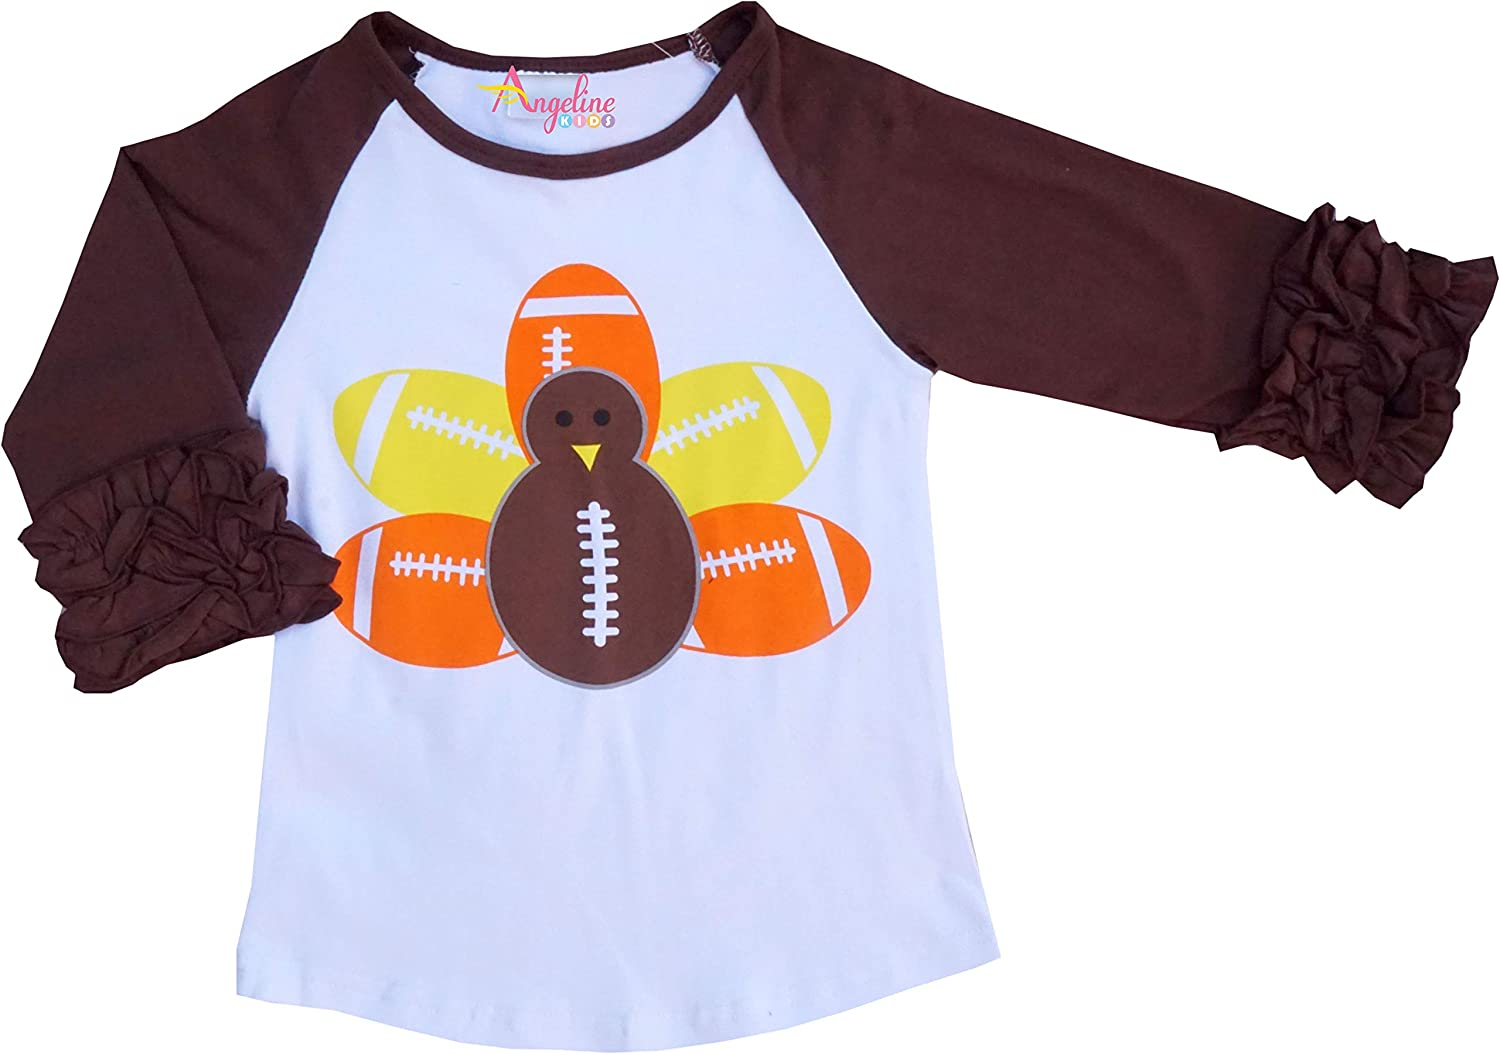 Angeline SHIRT ベビーガールズ 7 B07HXRWJPC Turkey Football Turkey Football 7 7|Football Turkey, ポンポリース:a67626e4 --- itxassou.fr